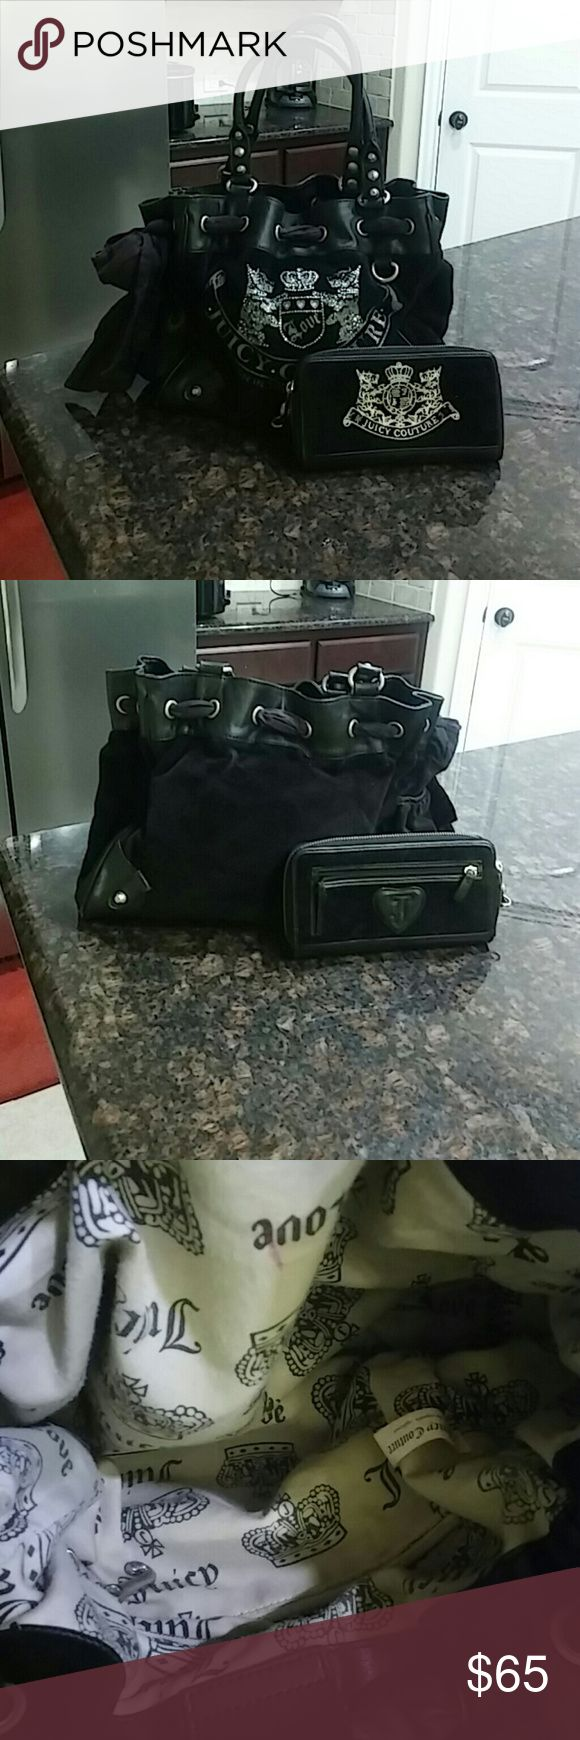 😍Juicy Couture Bundle😍 Gently used black and silver large juicy Couture bag with rhinestones and like new matching wallet. The inside of bag in very good condition no major stains. Small signs of wear on left bottom corner see pics😍 Juicy Couture Bags Shoulder Bags